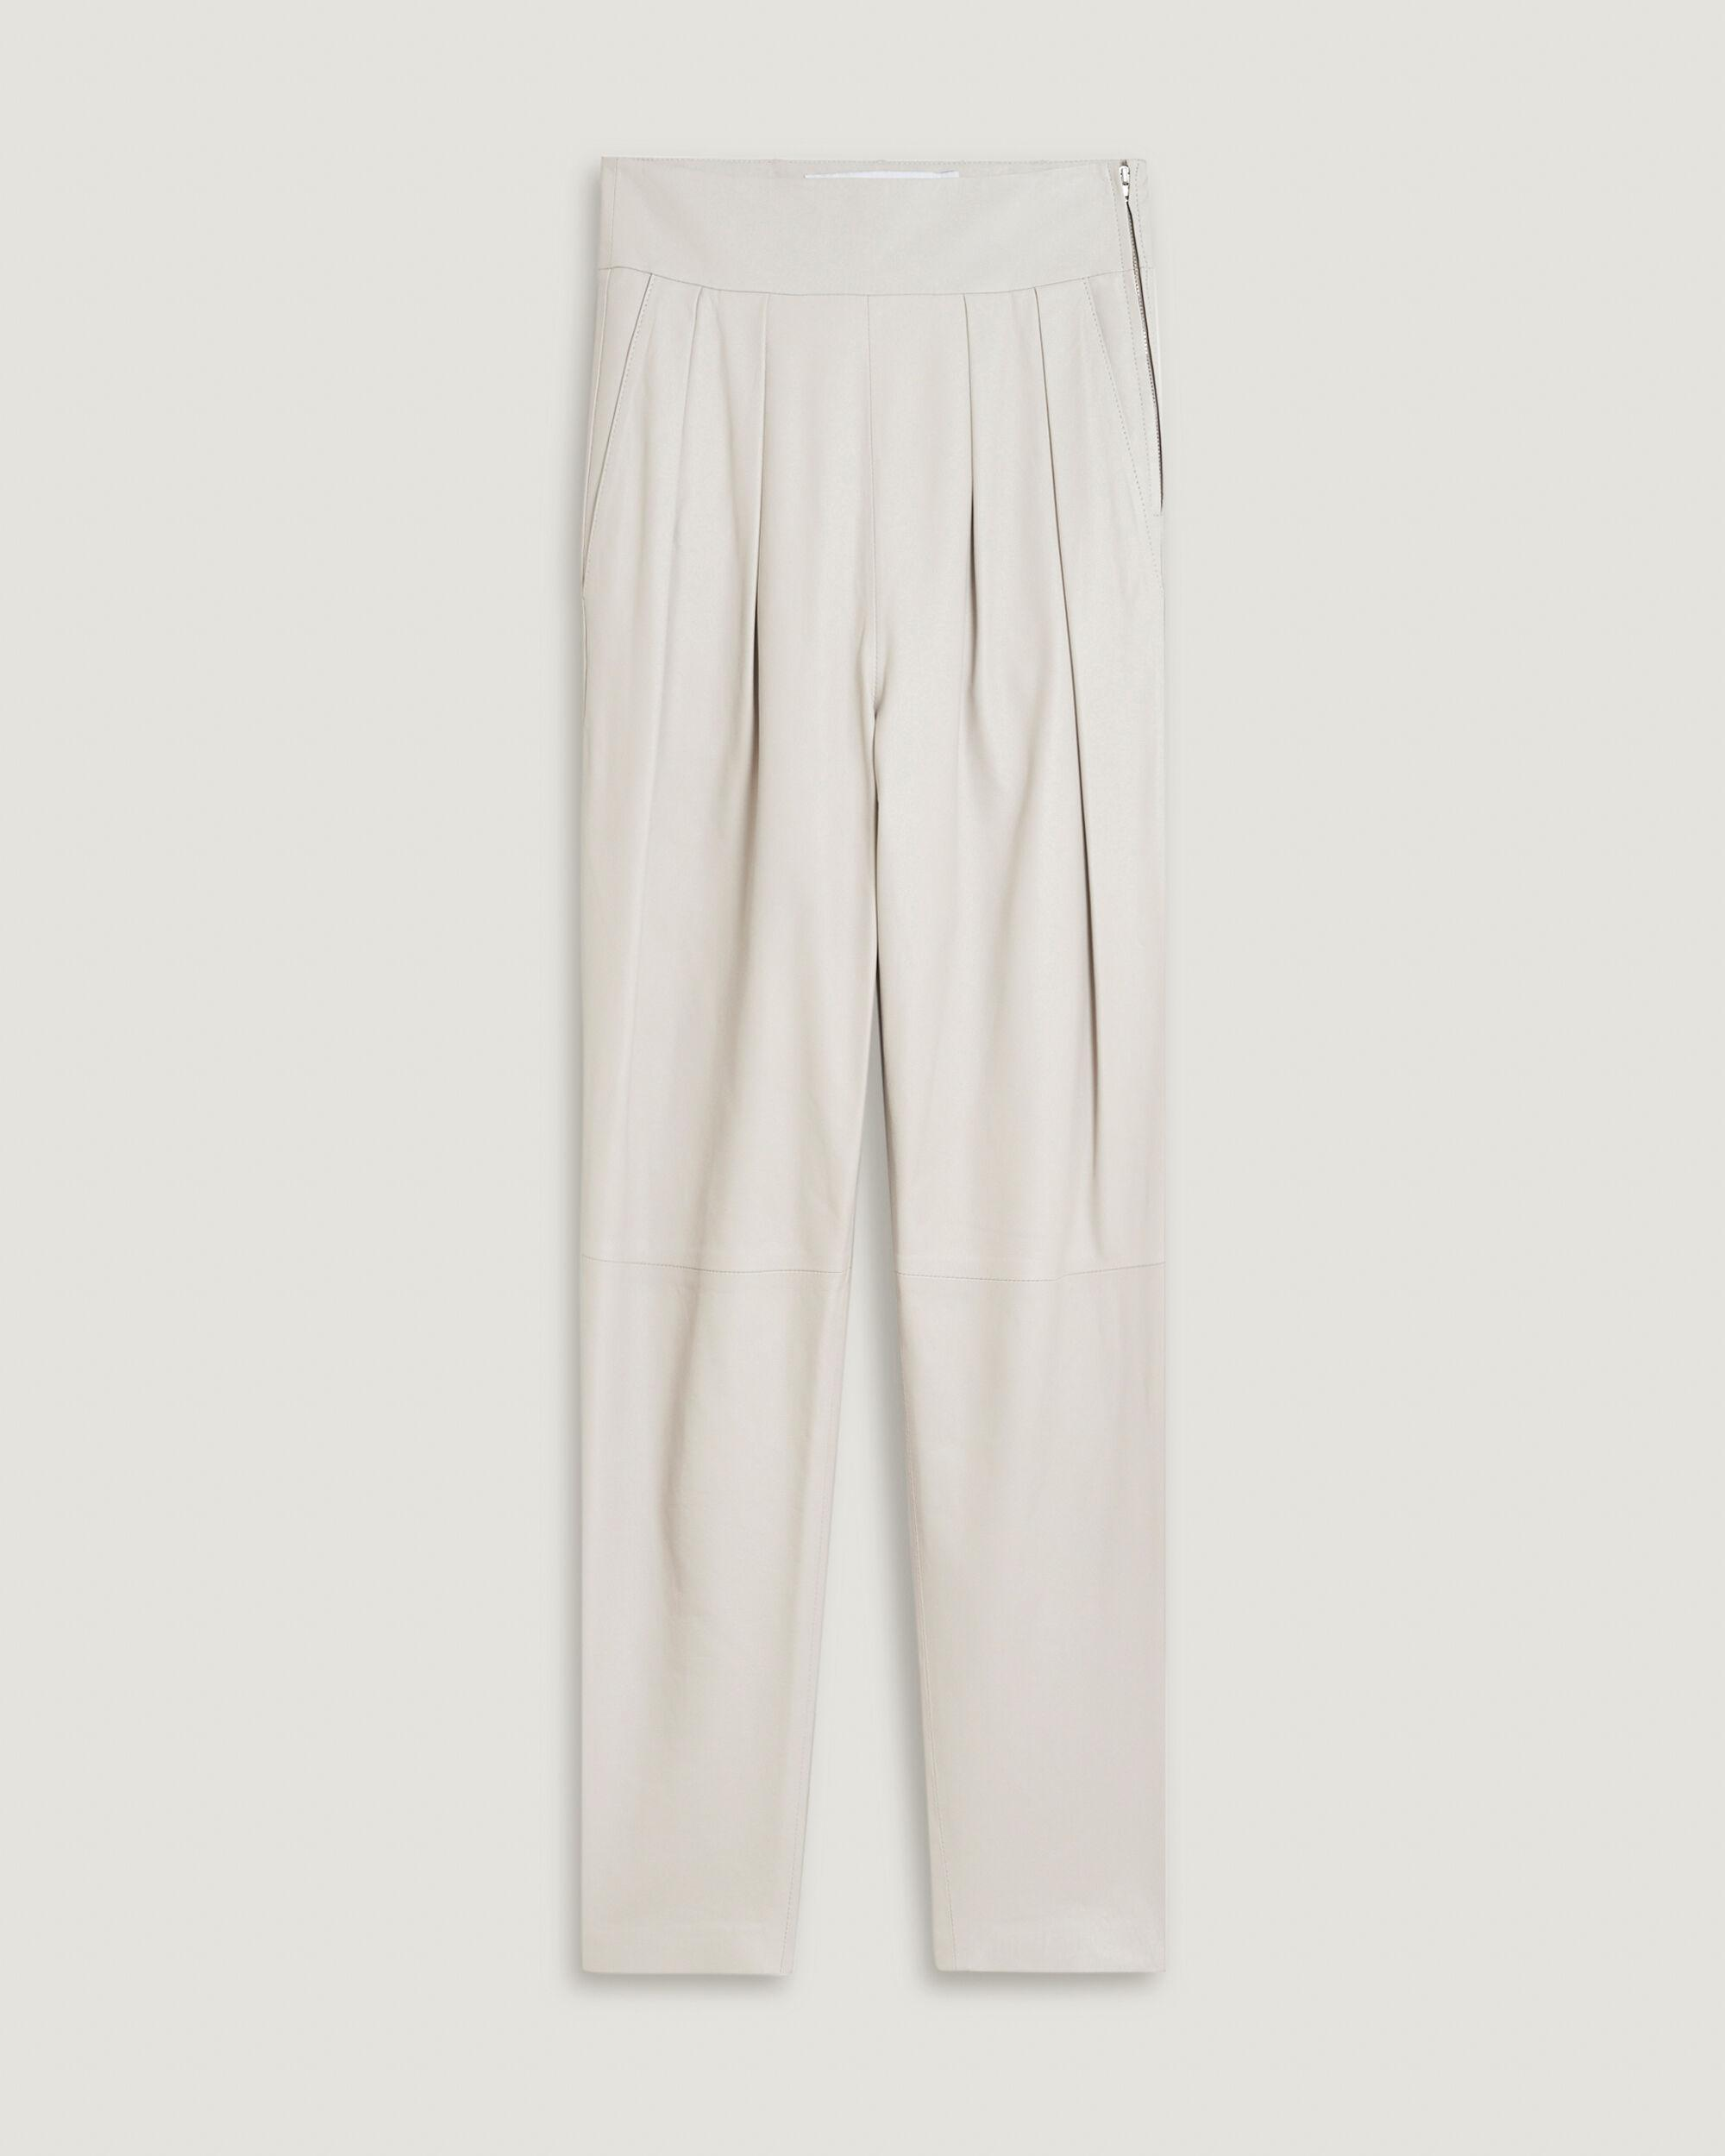 BISHO TAILORED HIGH WAIST LEATHER TROUSERS 3